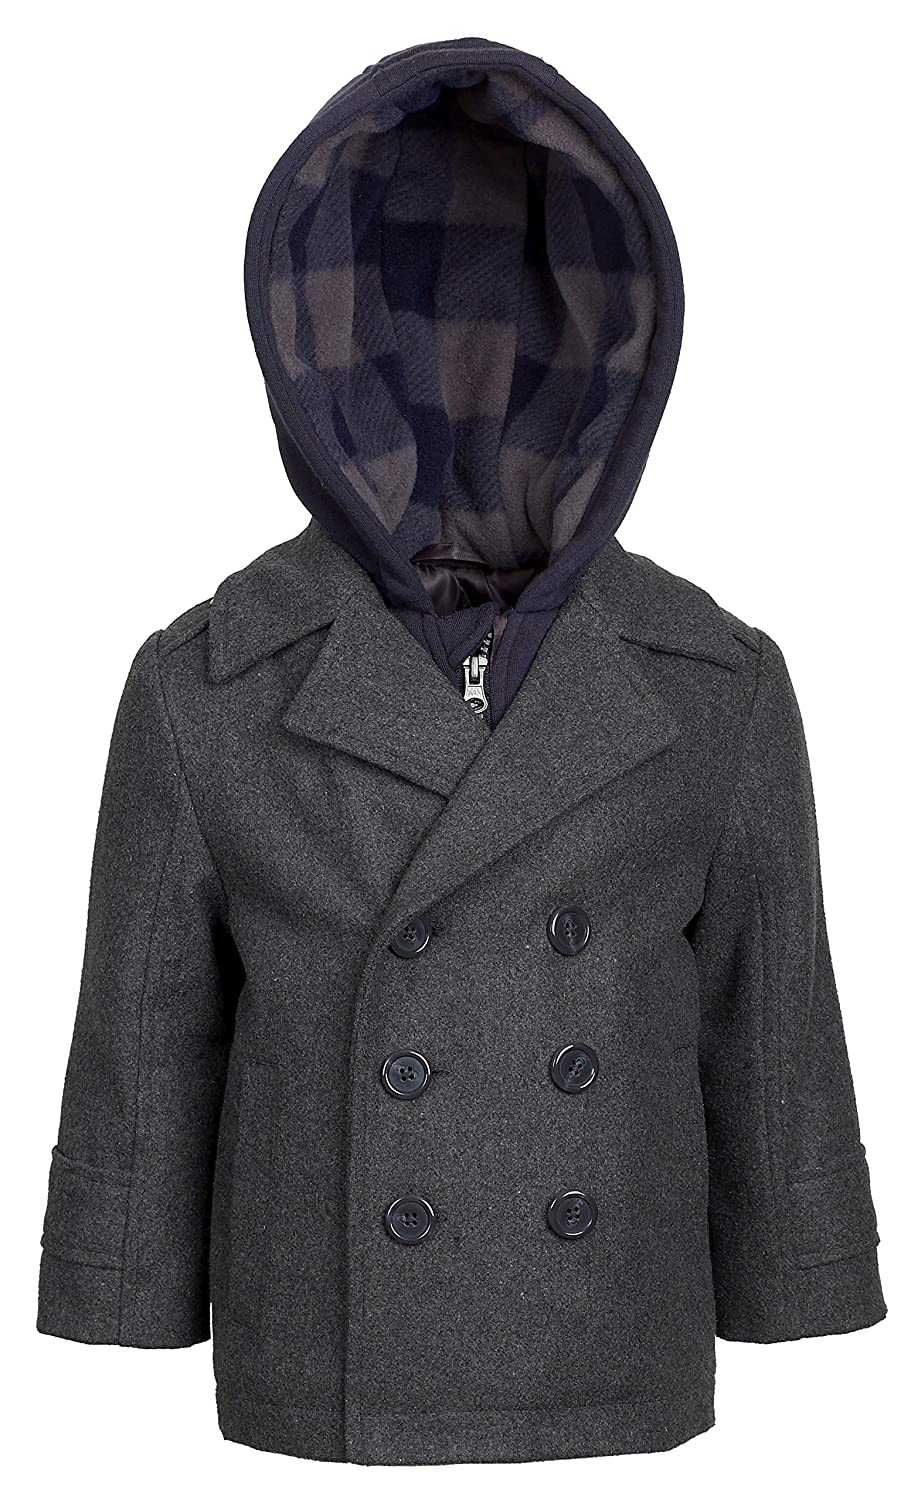 d2899f8dc6b8 London Fog Boys Double Breasted Wool Blend Hooded Winter Peacoat Jacket Coat